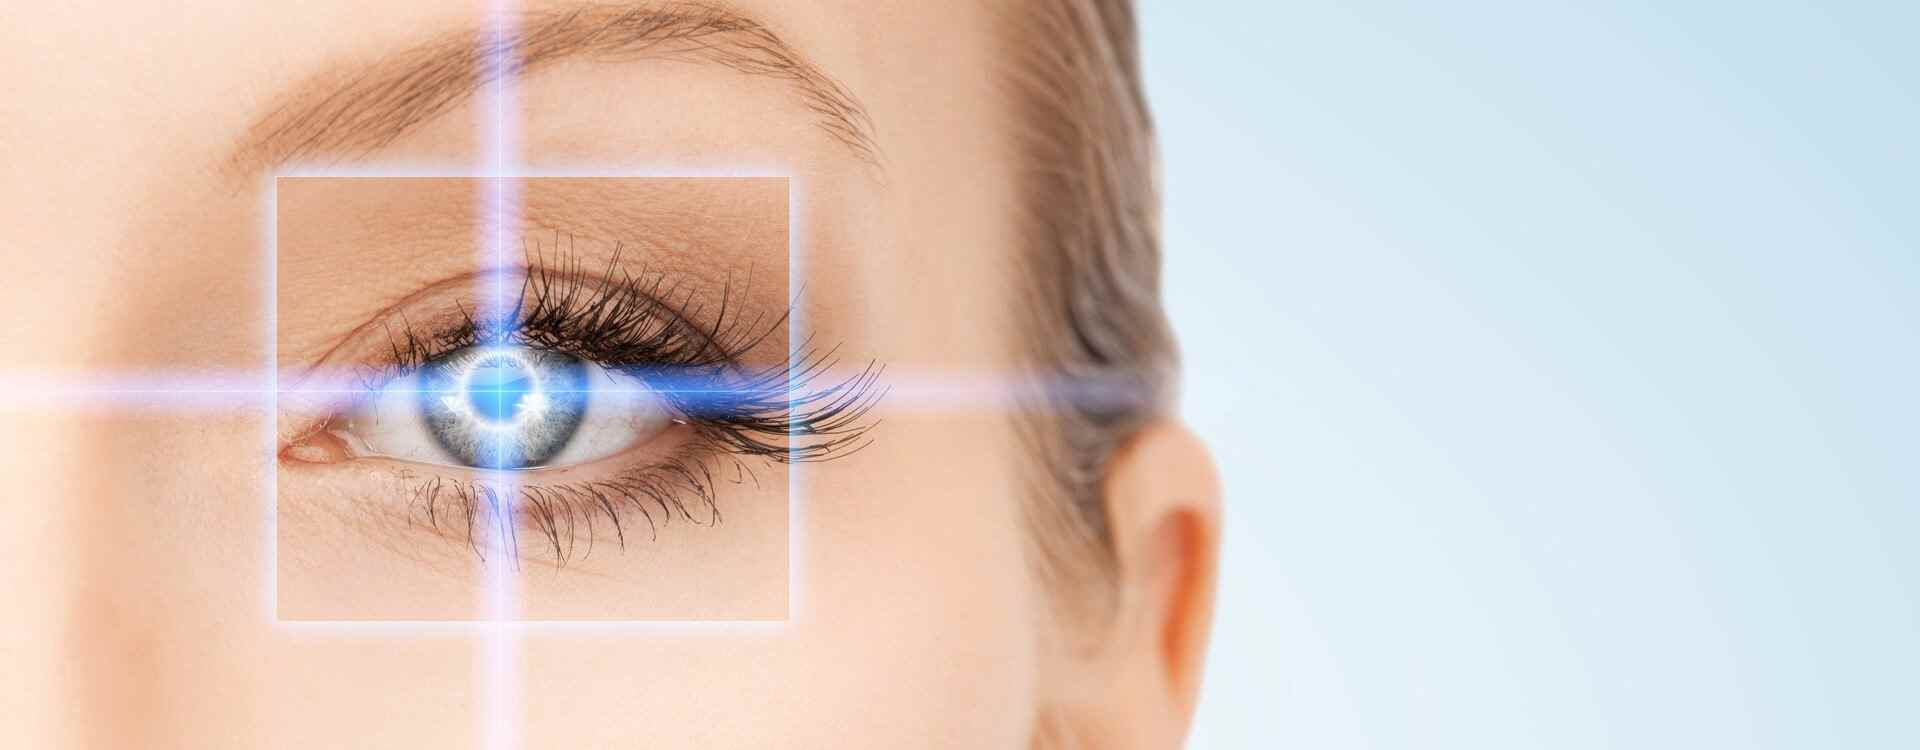 Best Hospital For Lasik Treatment in Ahmedabad